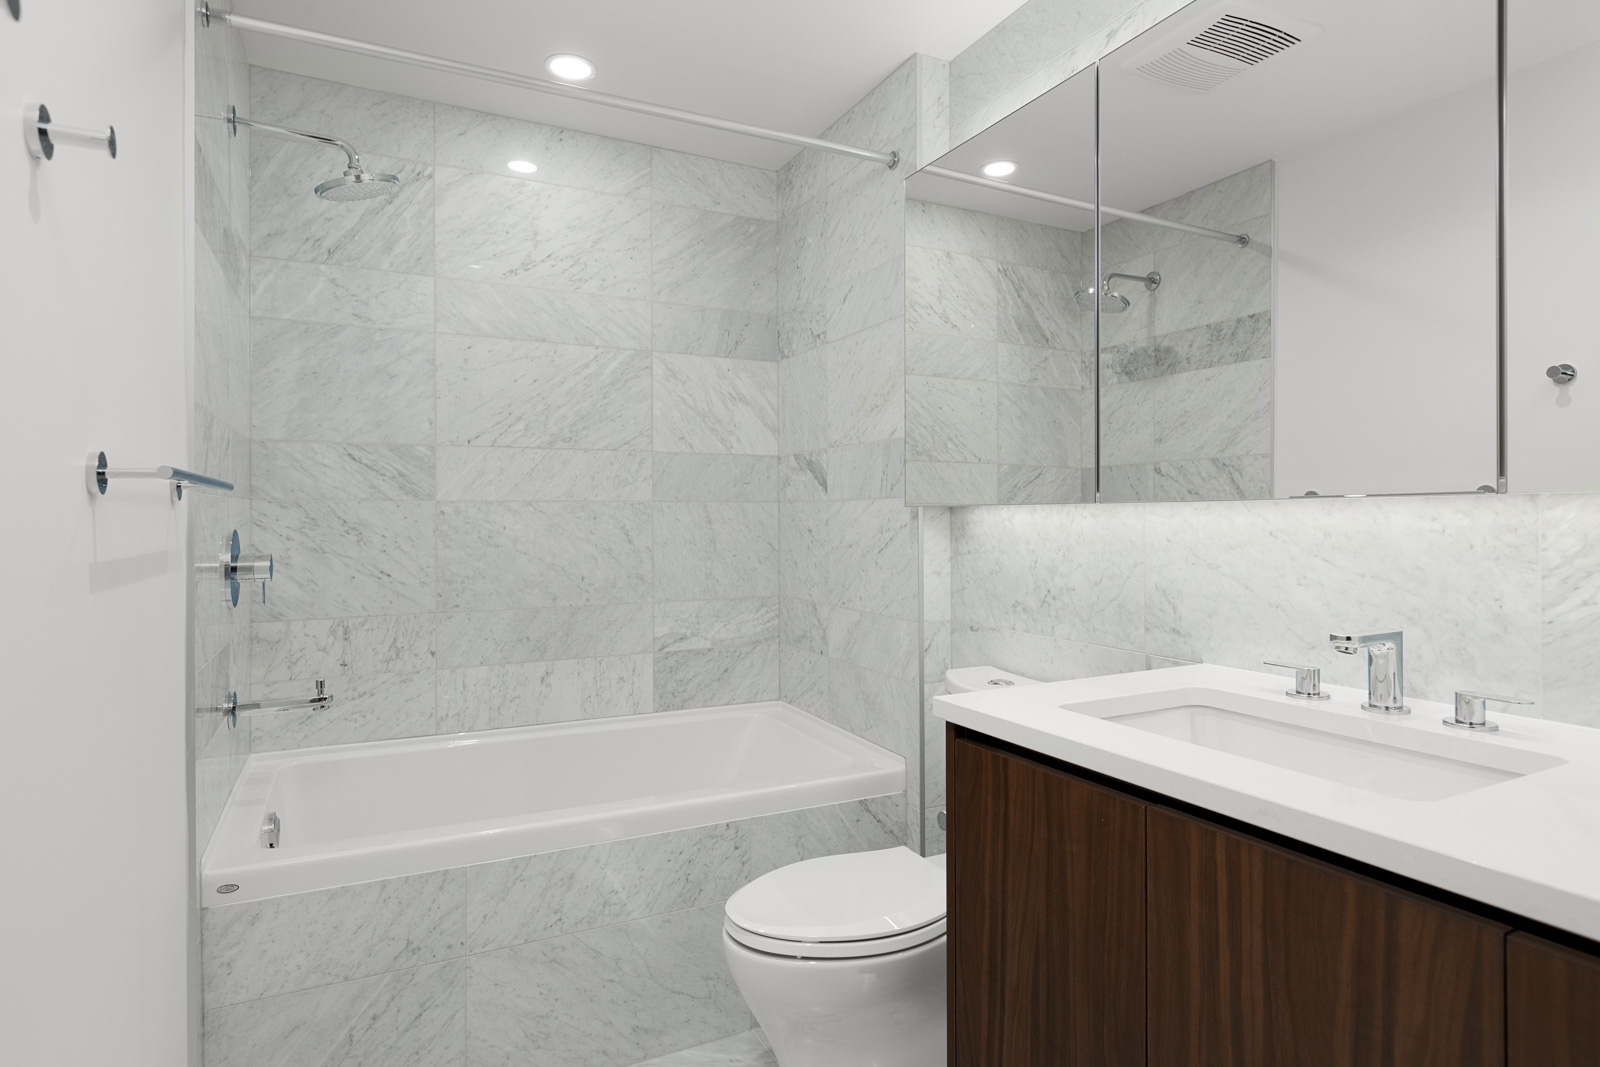 bathroom with marble tiling showing bath tub toilet basin and mirrors